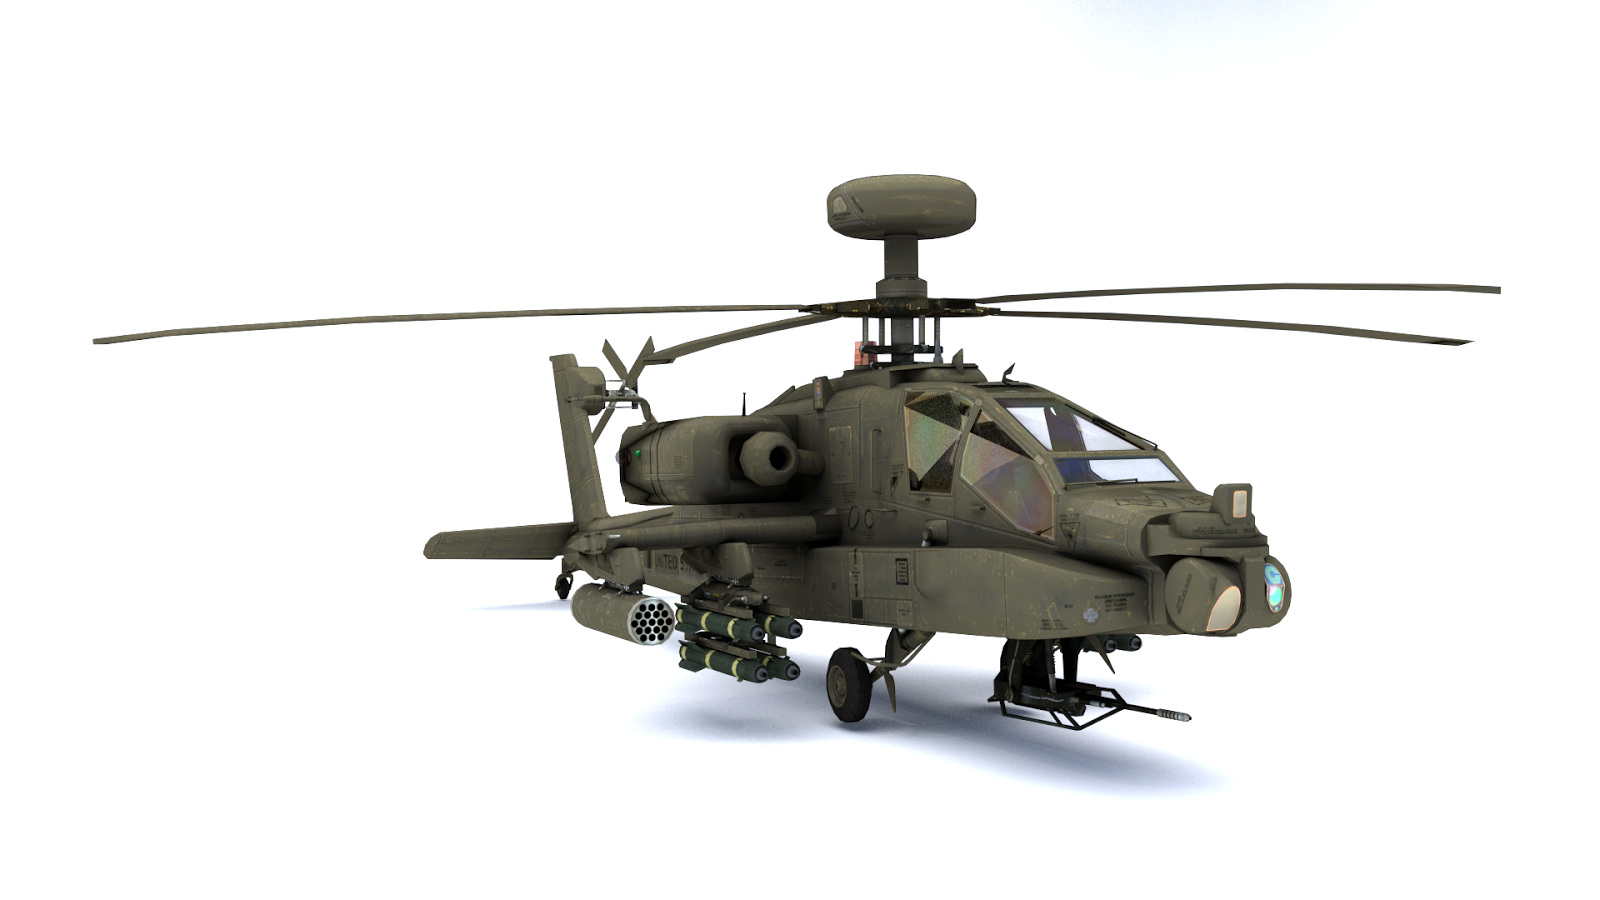 Apache Longbow Helicopter Wallpaper 3d modelus apache longbow 1600x900